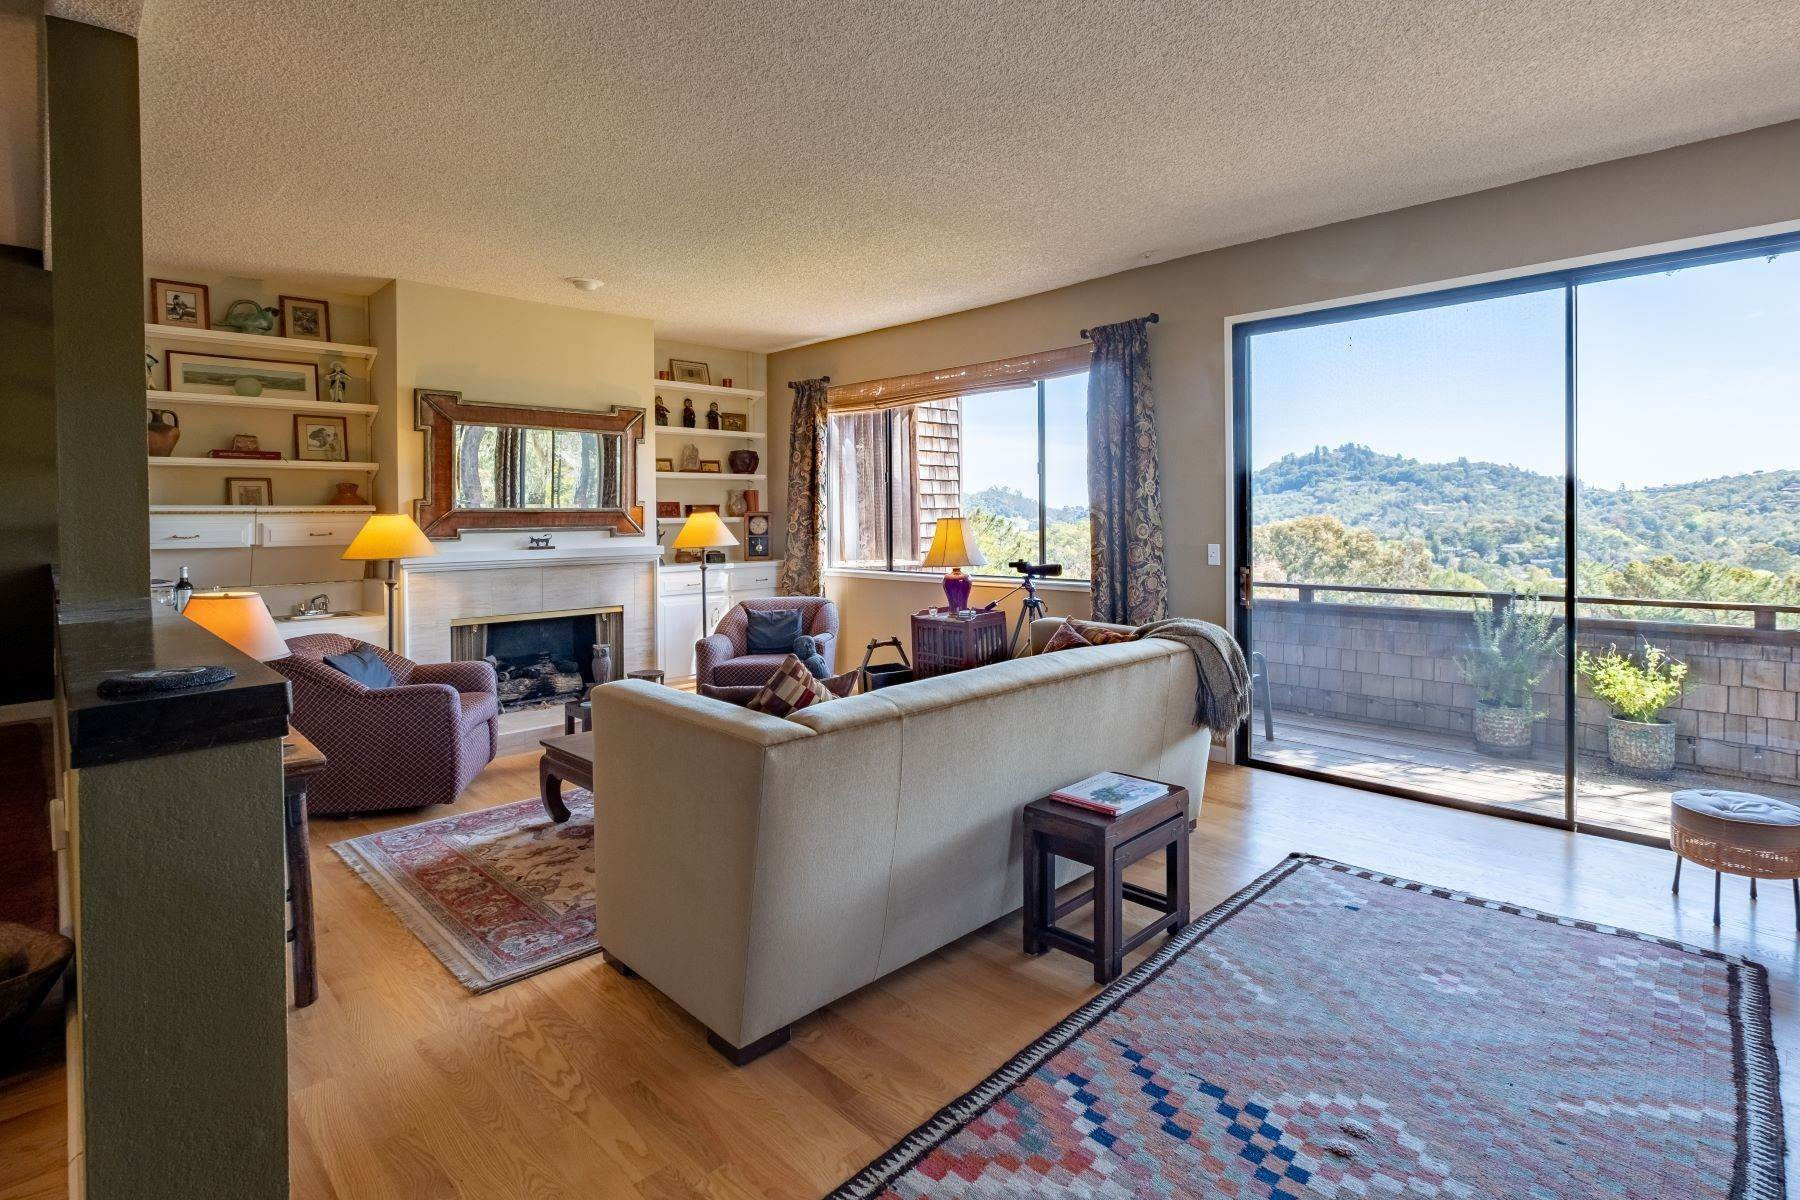 3. Condominiums for Sale at Luxury Townhome with Elevator 130 El Condor Court San Rafael, California 94903 United States